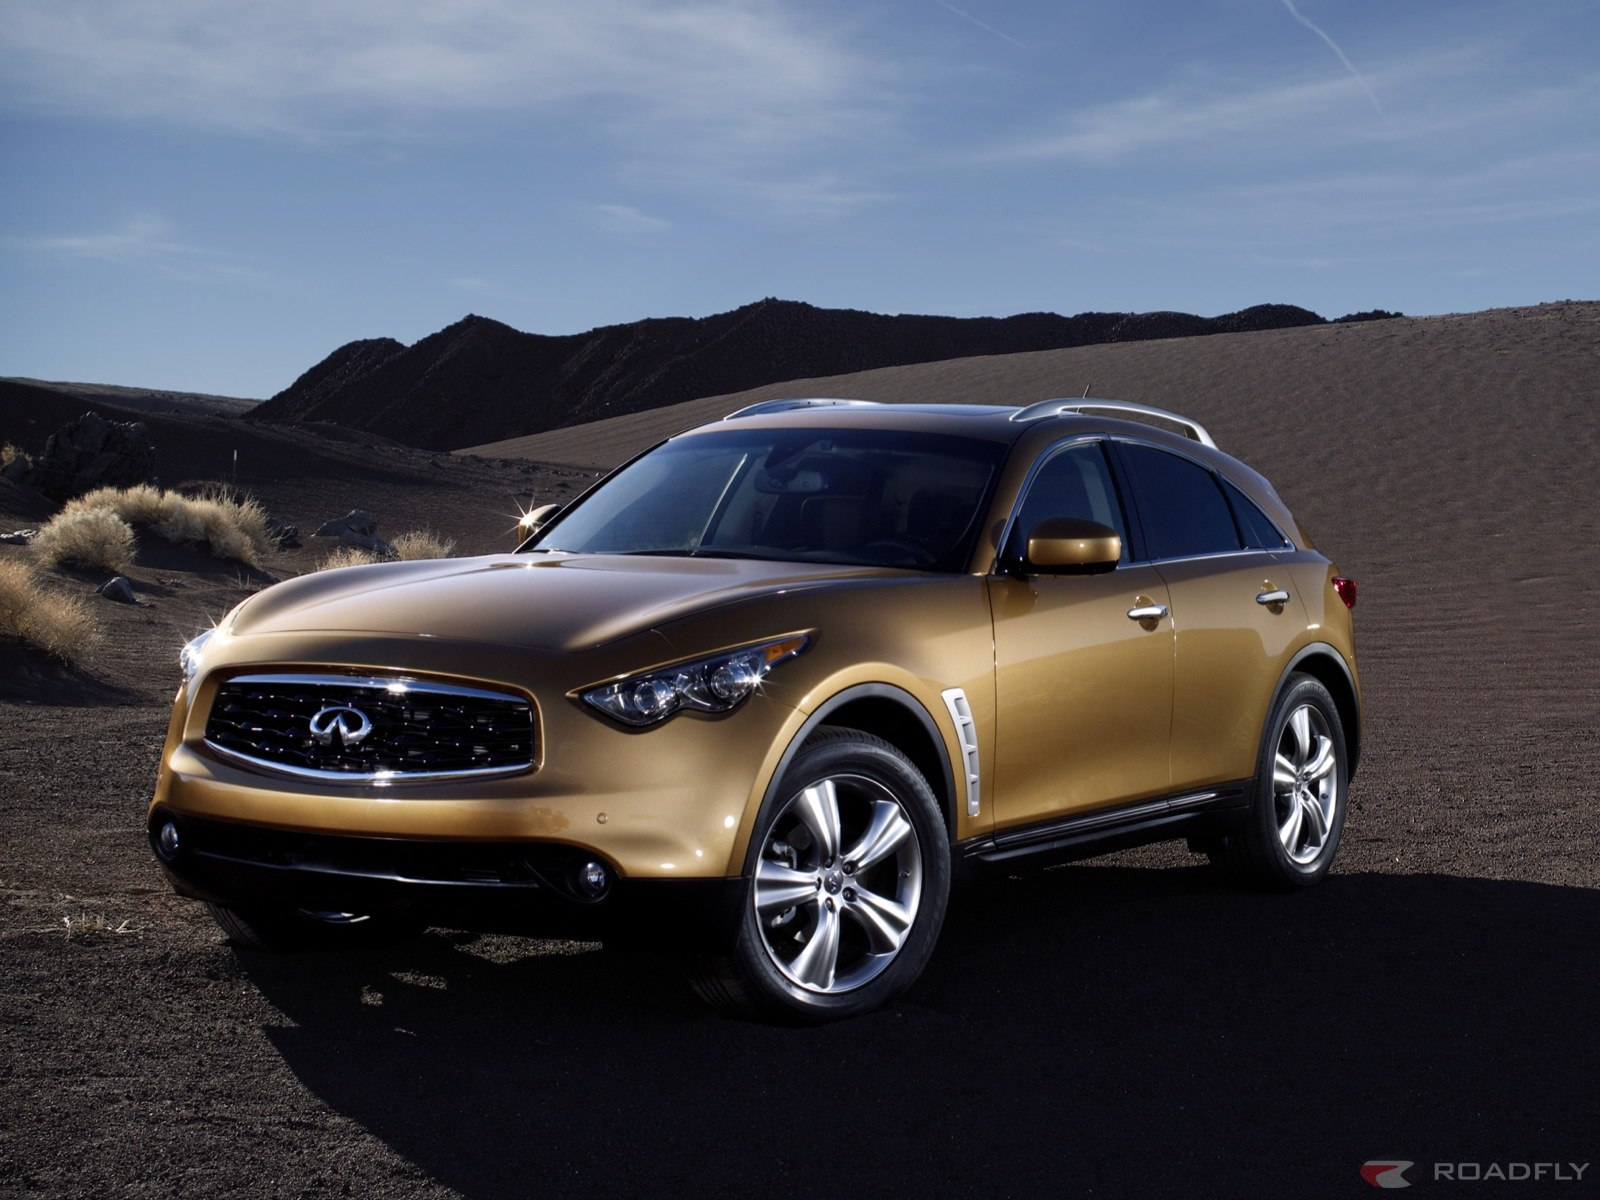 Infiniti FX50 and FX35 debut Wallpapers HD Wallpaper